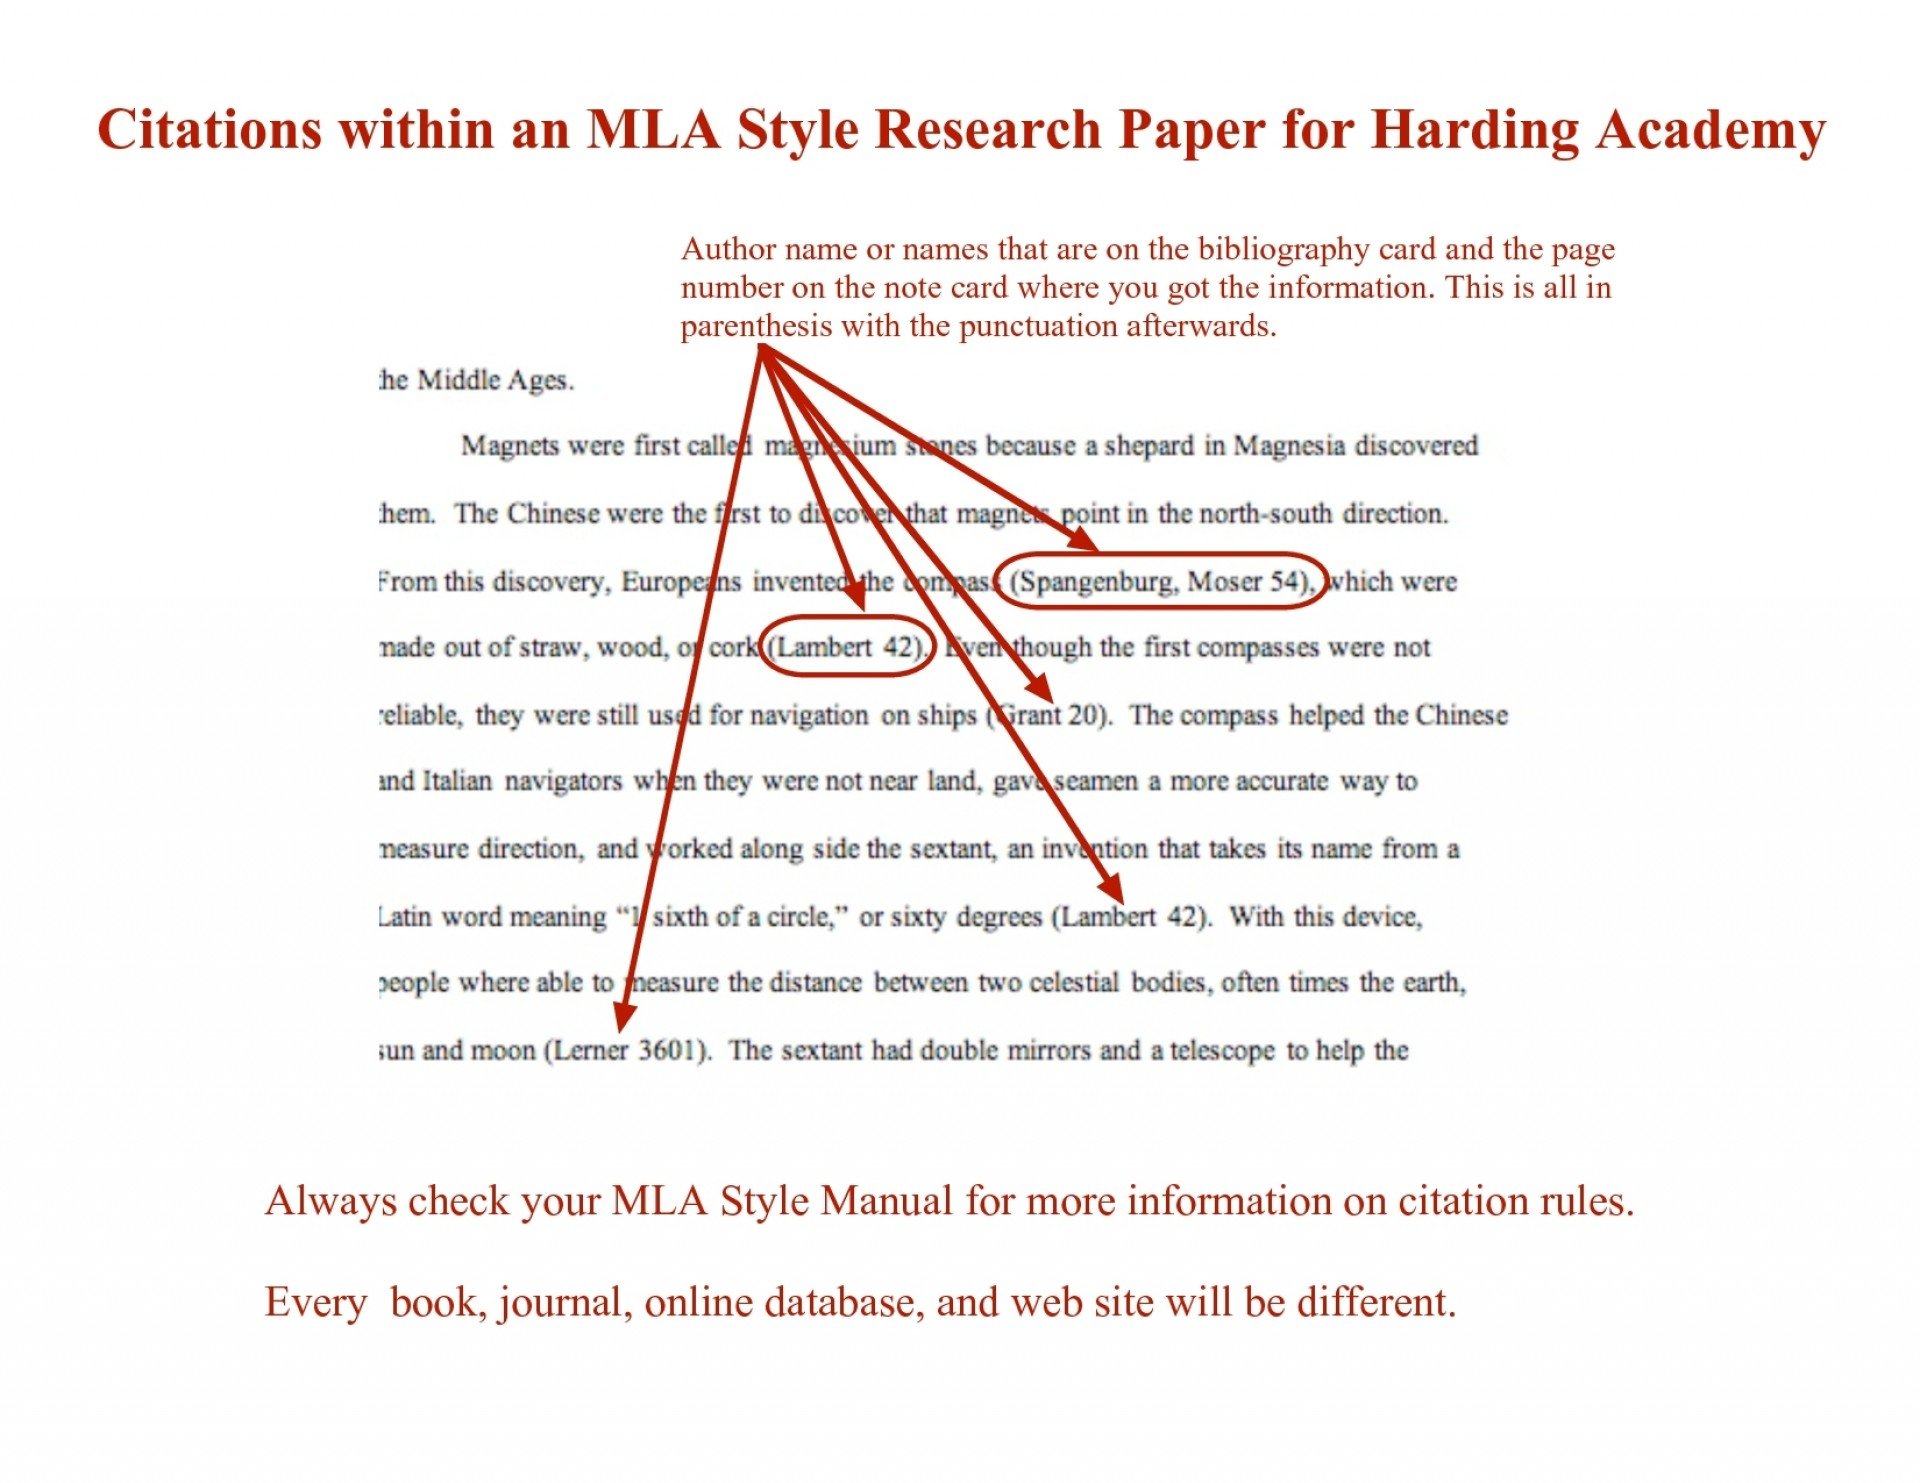 018 Ideas Of How To Cite Website In Paper Mla With Additional Do You Citations Format For Research Excellent Style Example Works Cited 1920